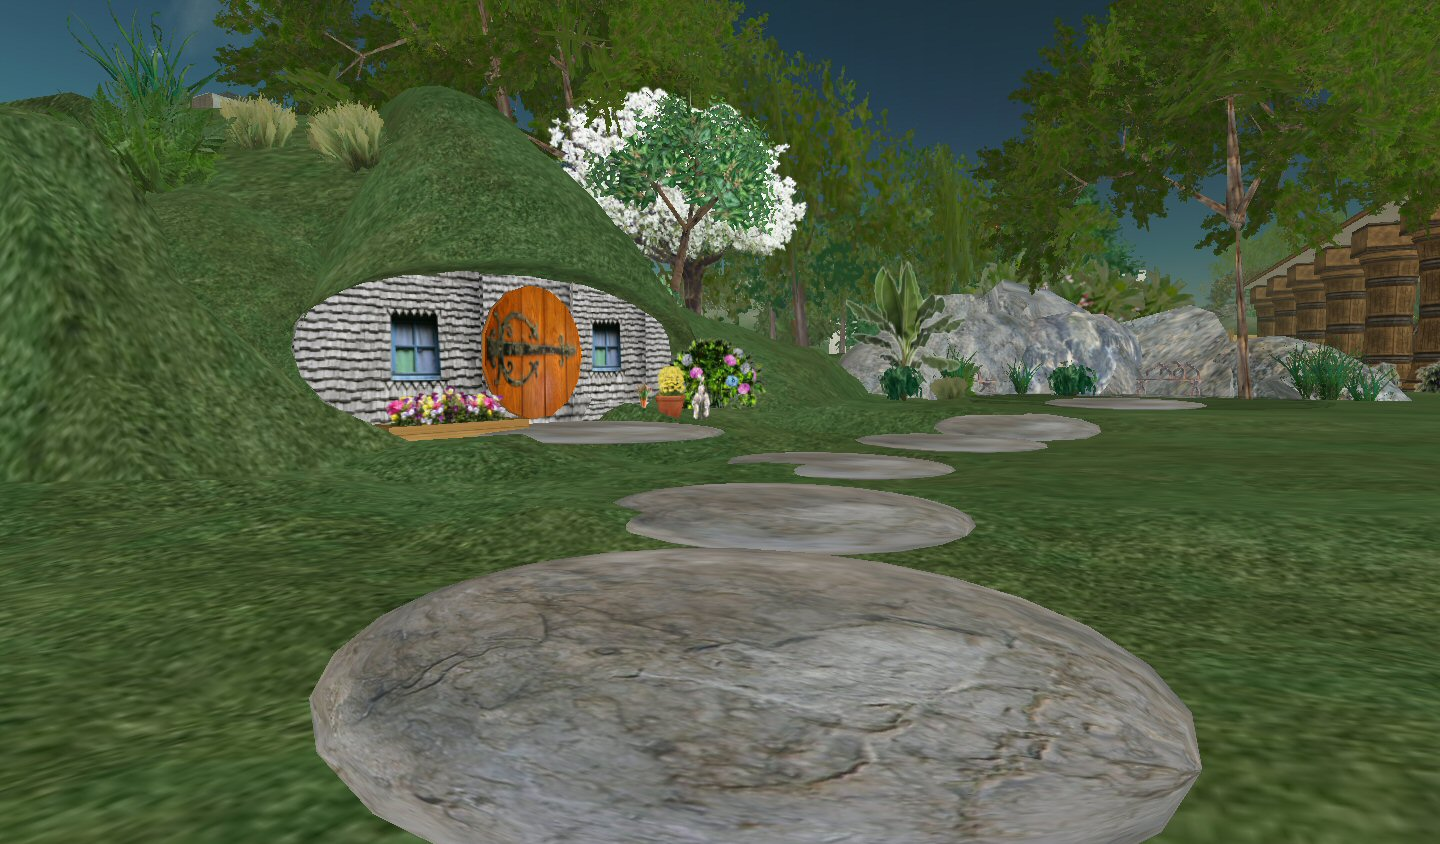 03-SEP-07 hobbithill_001